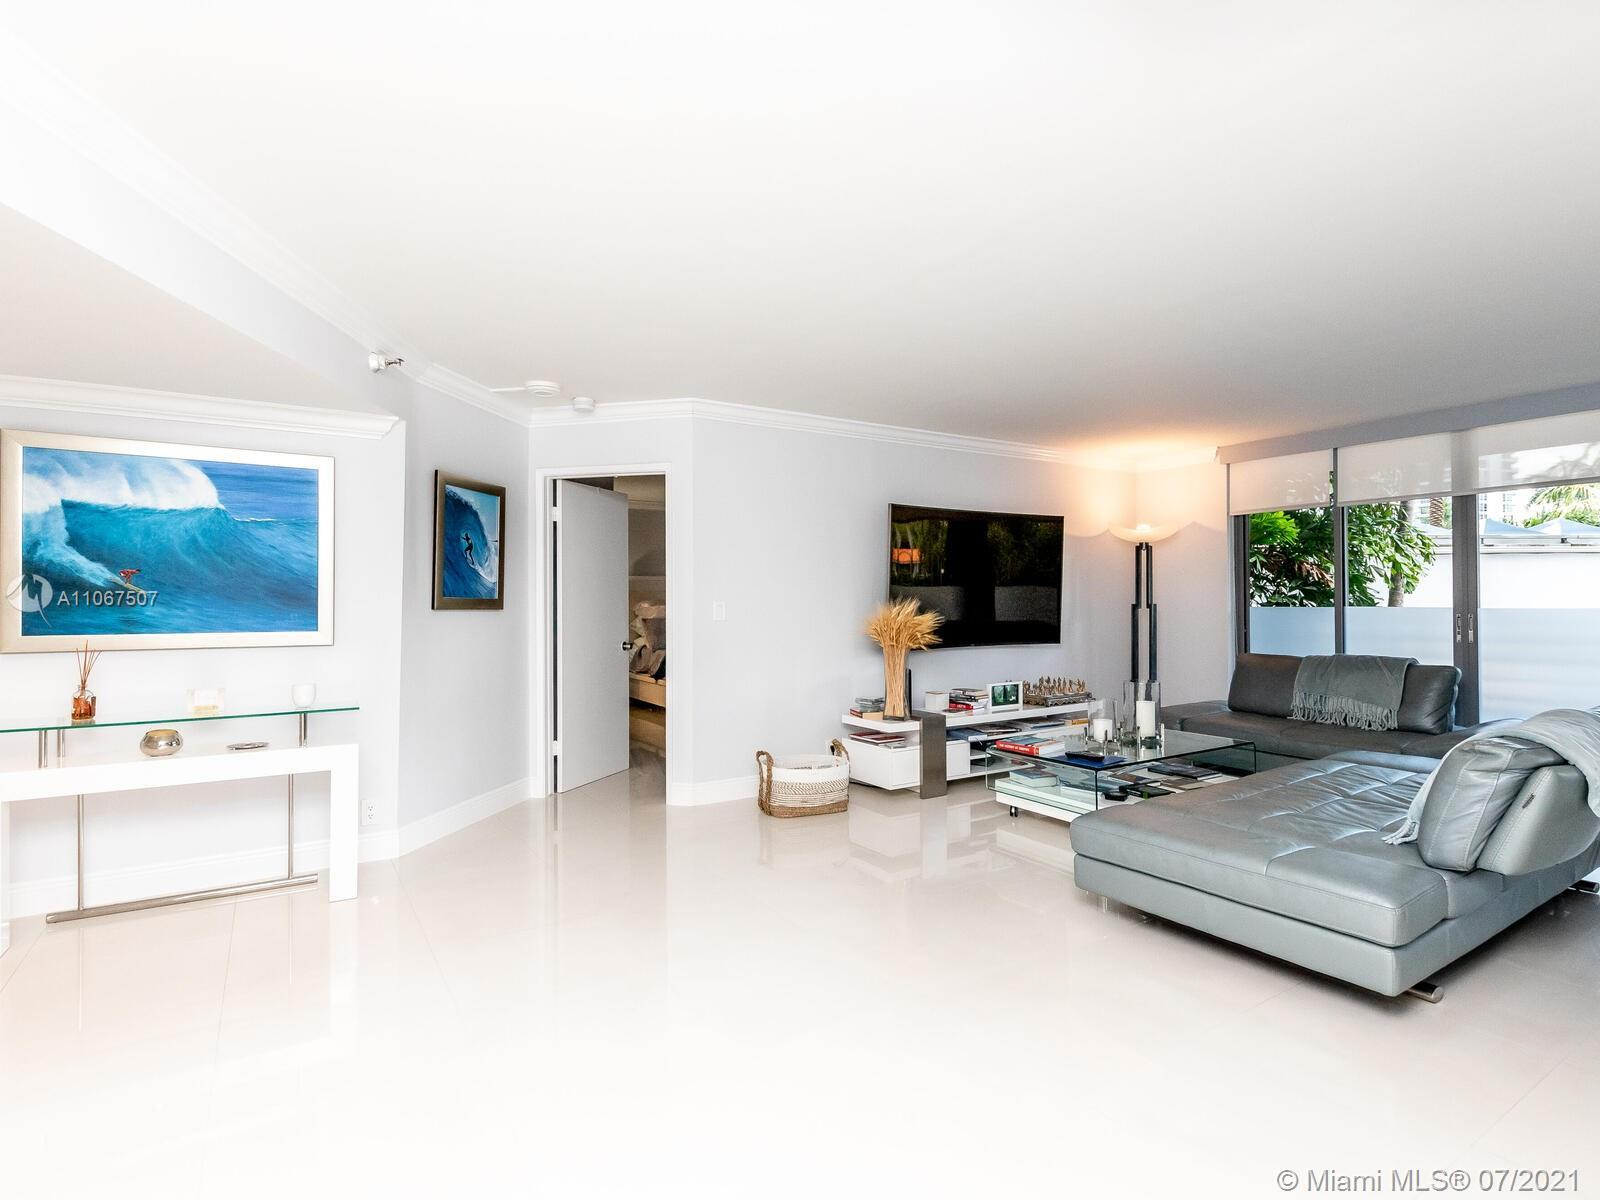 BEAUTIFUL LOCATION CONVERTED TO 3 BEDROOMS WITH 2 FULL BATHROOMS.  NEW PORCELAIN FLOORS.  RENOVATED